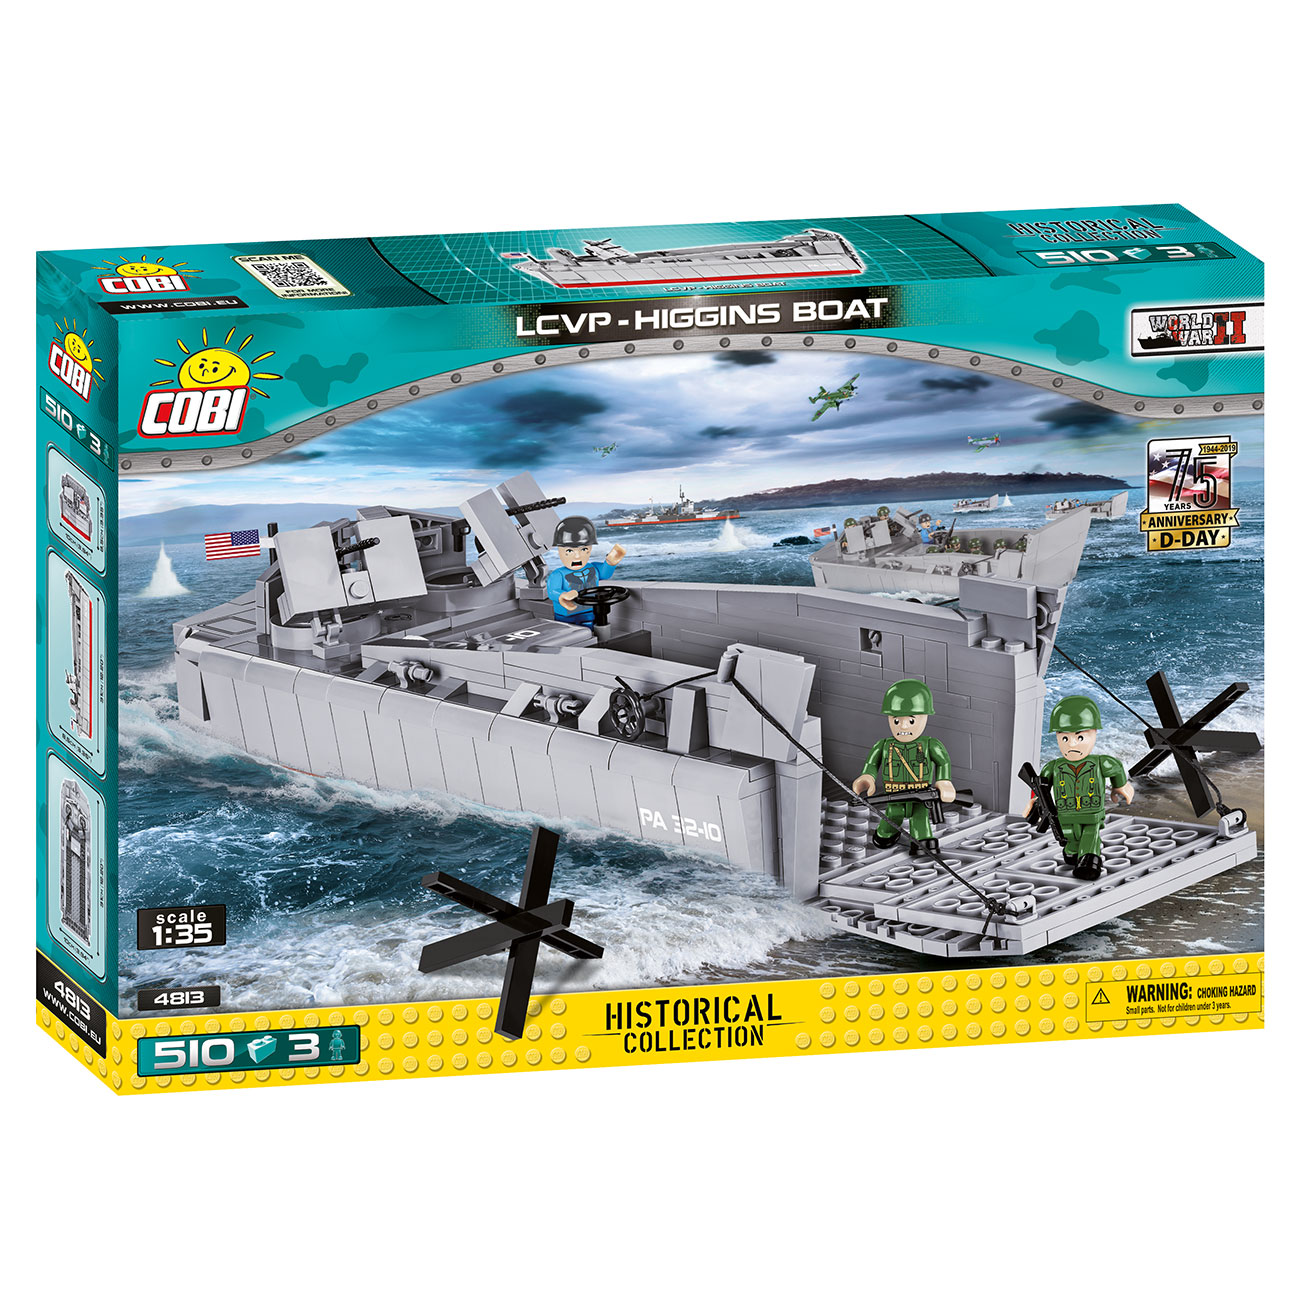 Cobi Historical Collection Bausatz Landungsboot LCVP Higgins Boat 510 Teile 4813 1